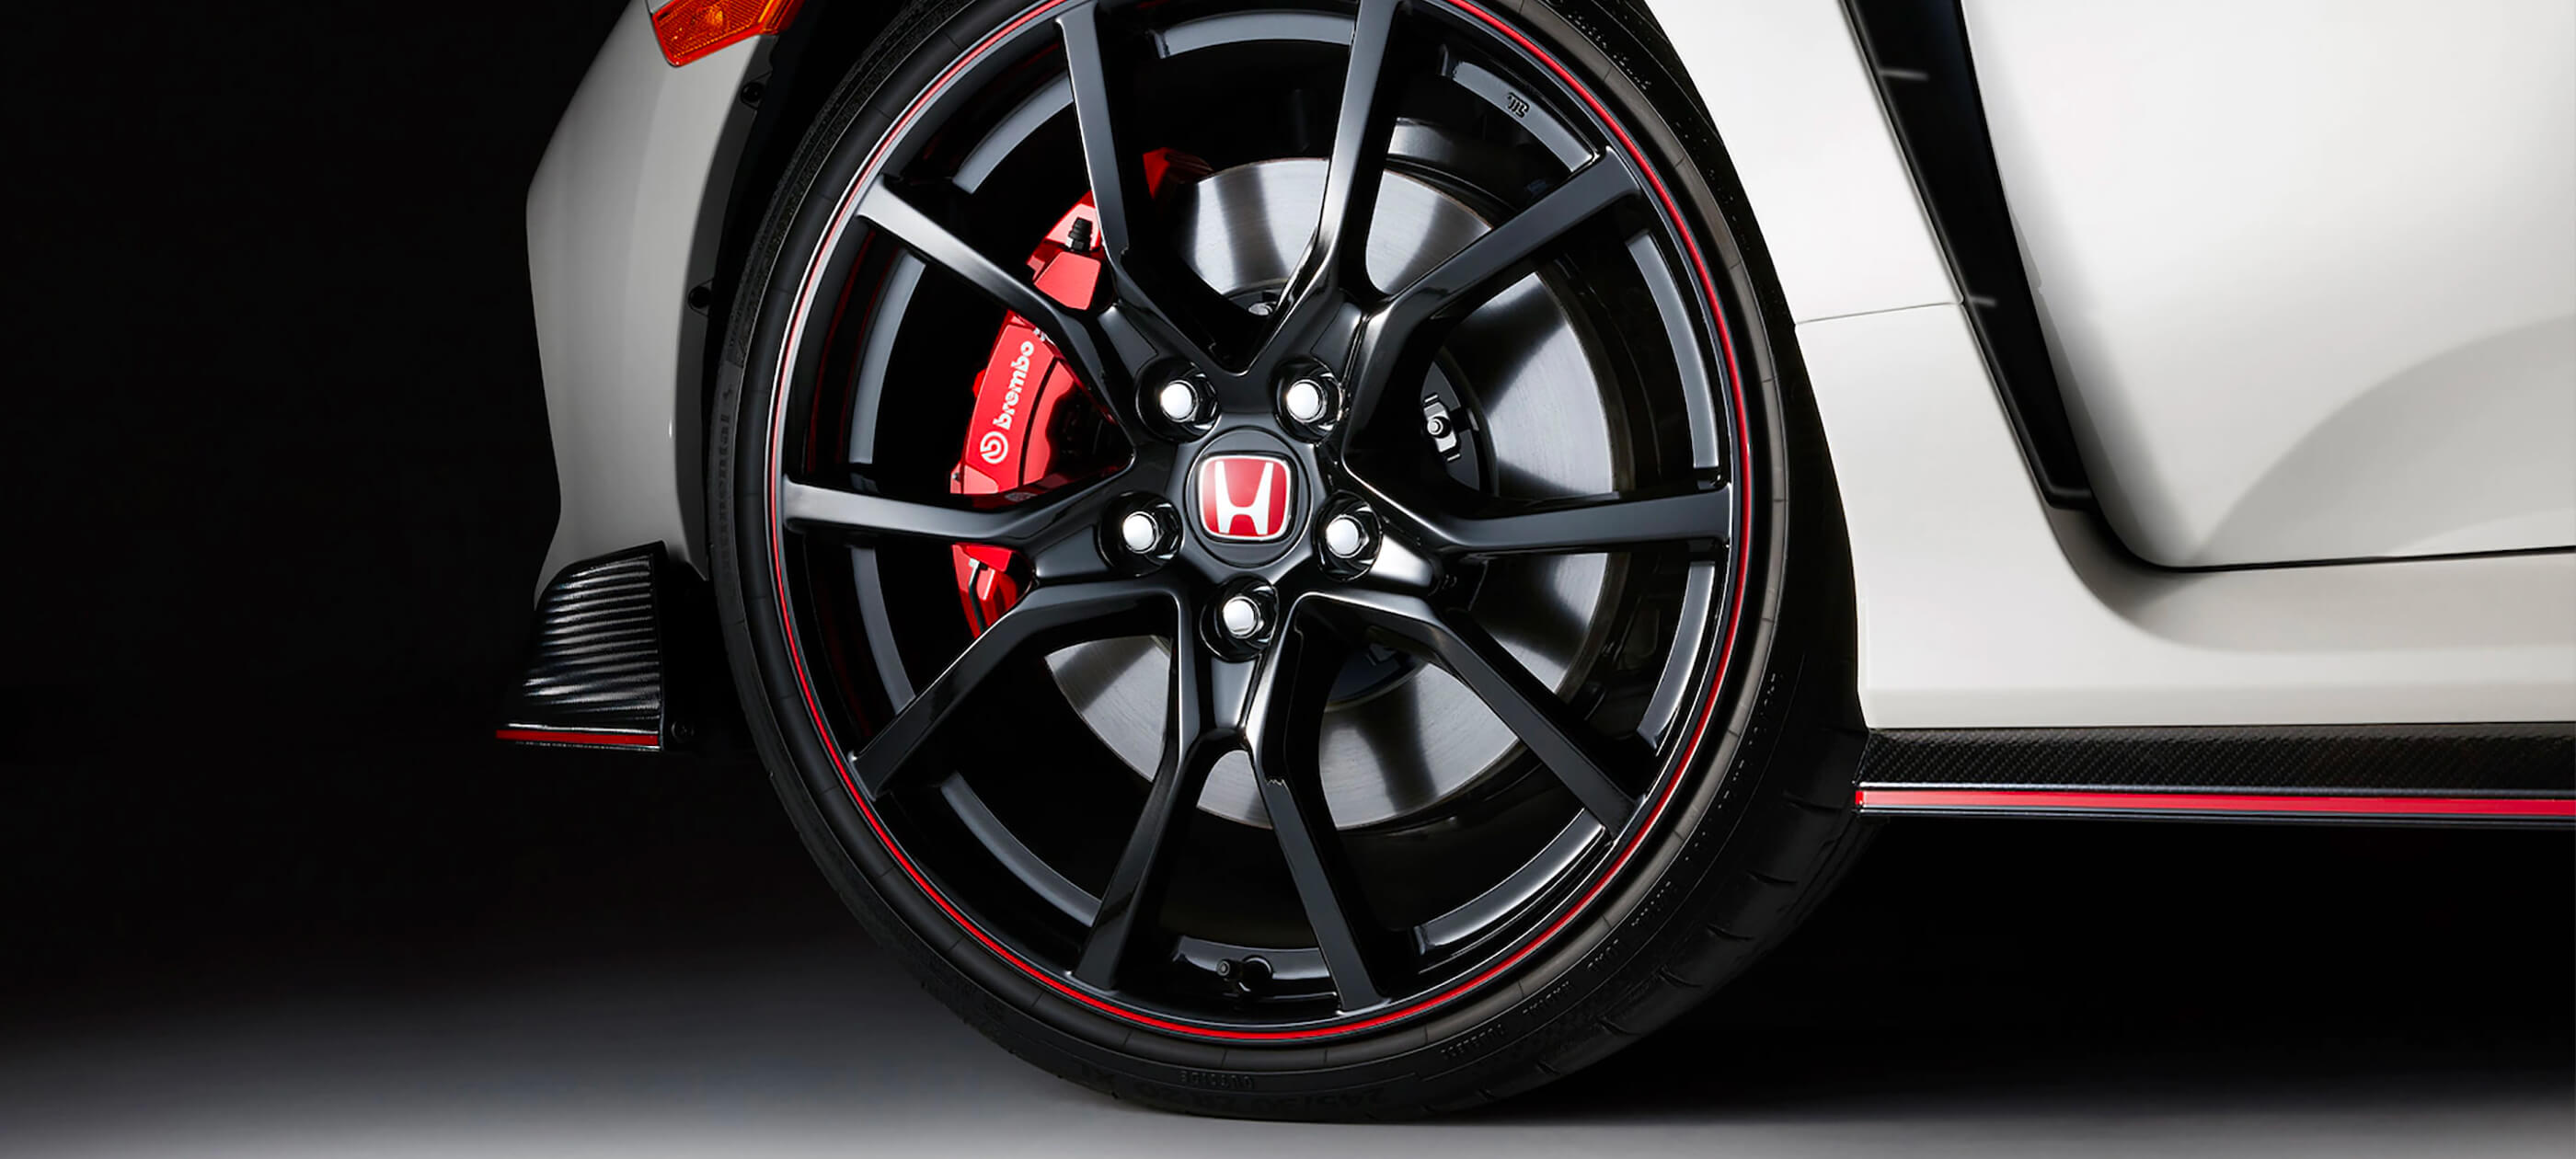 20-Inch Black Alloy Wheels